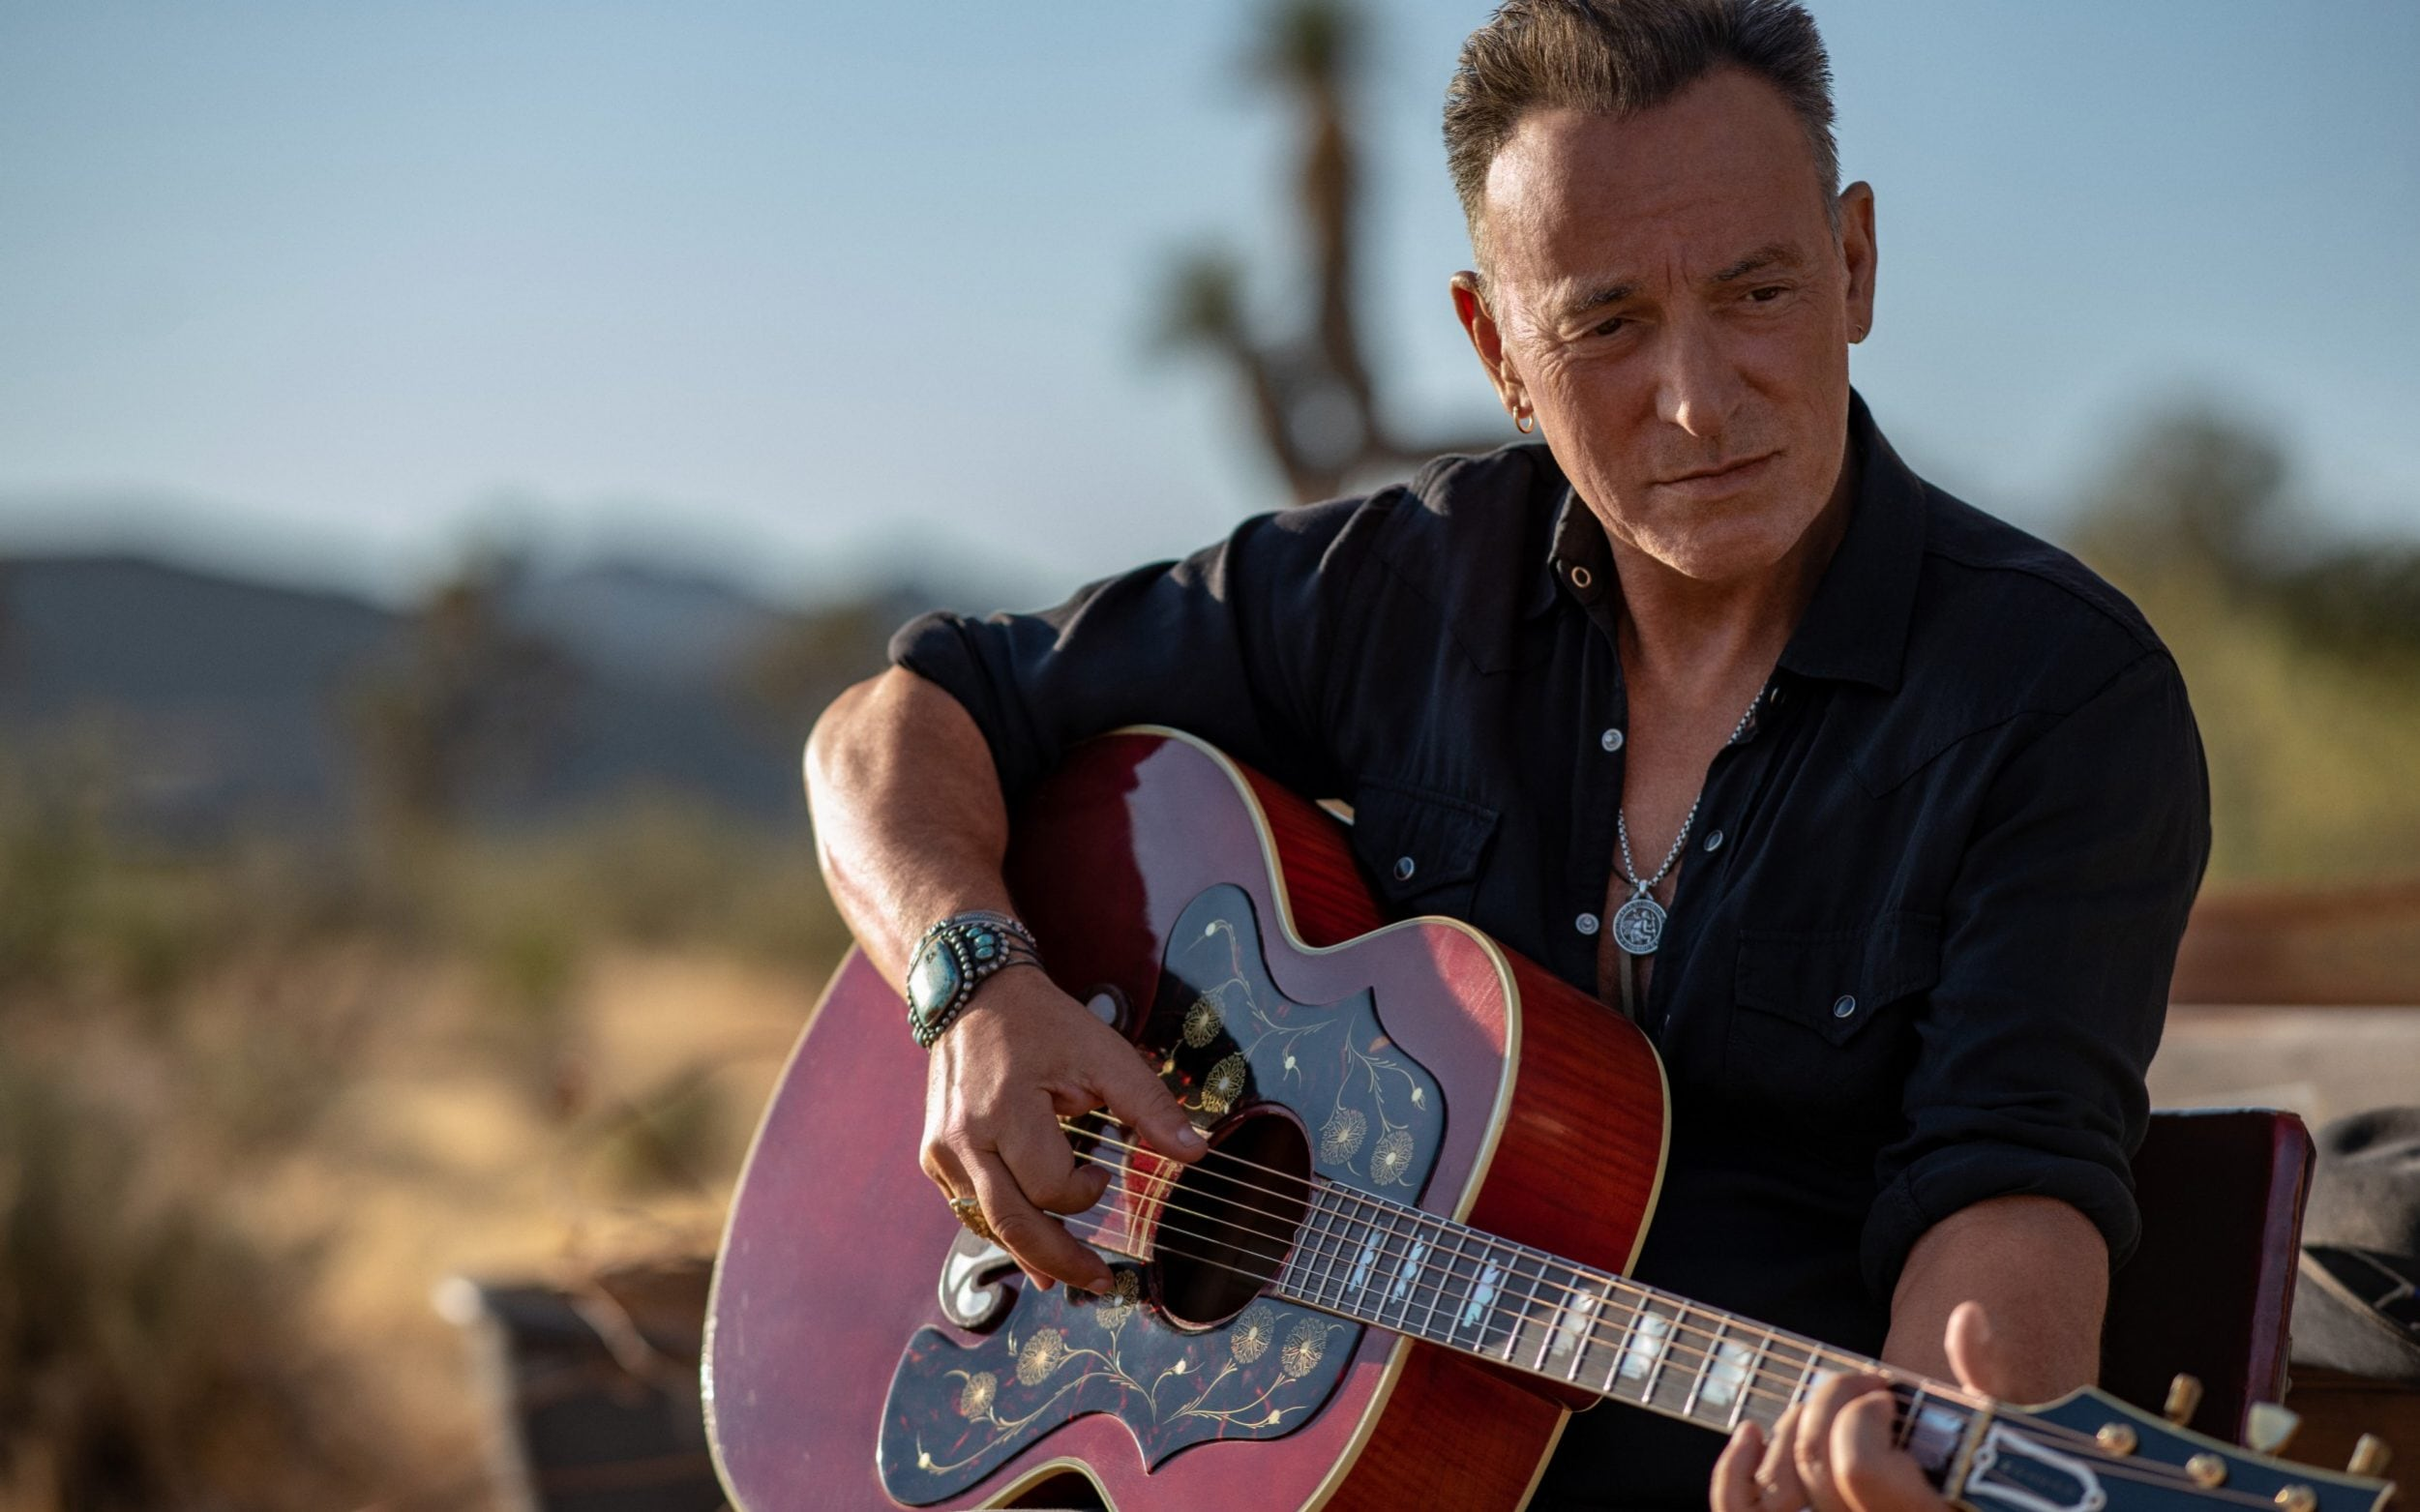 Inauguration special adds Springsteen and more